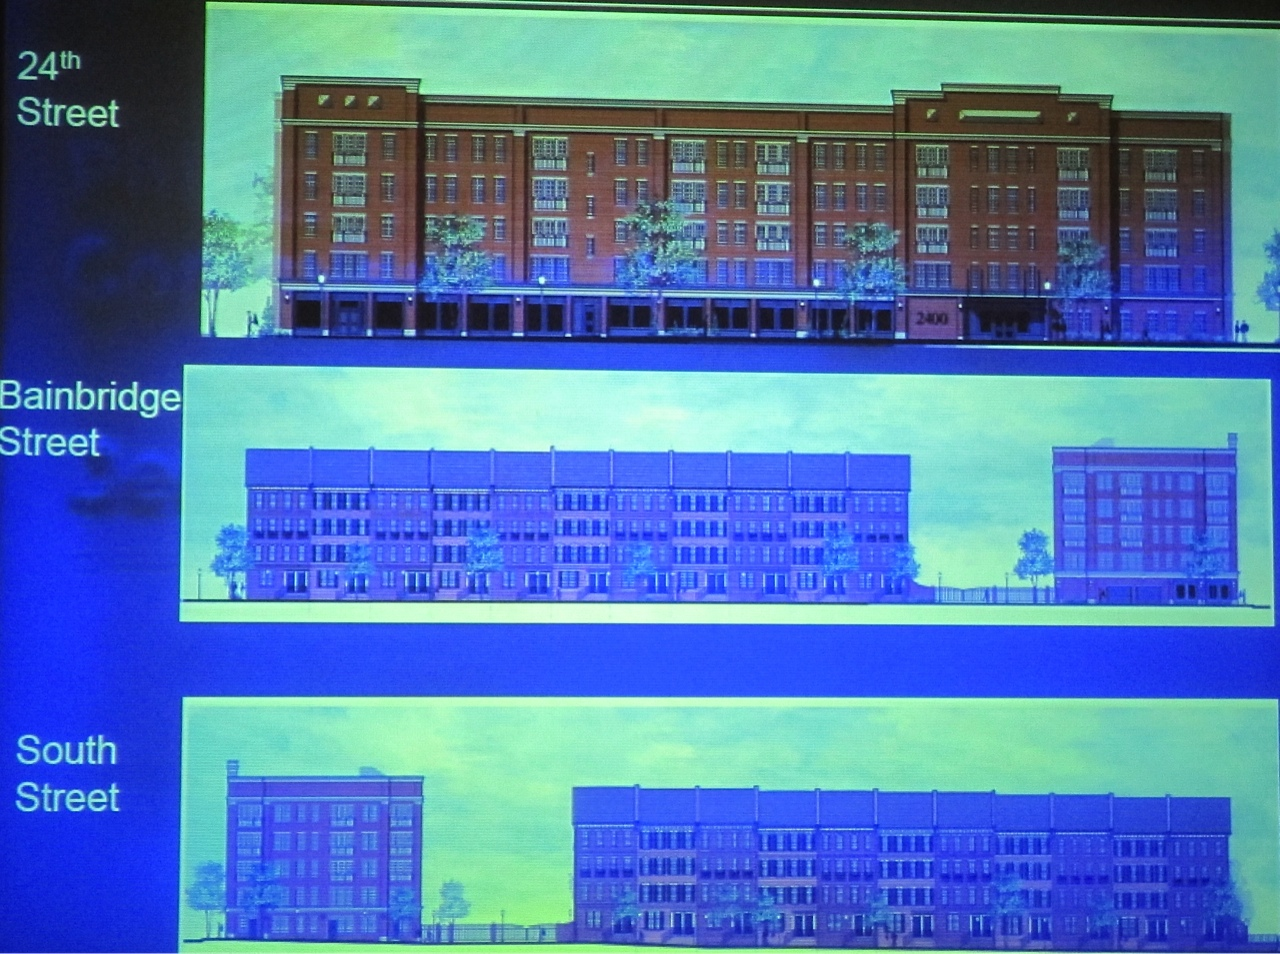 Planning gives support to Toll Brothers' South Street condo/townhouse development